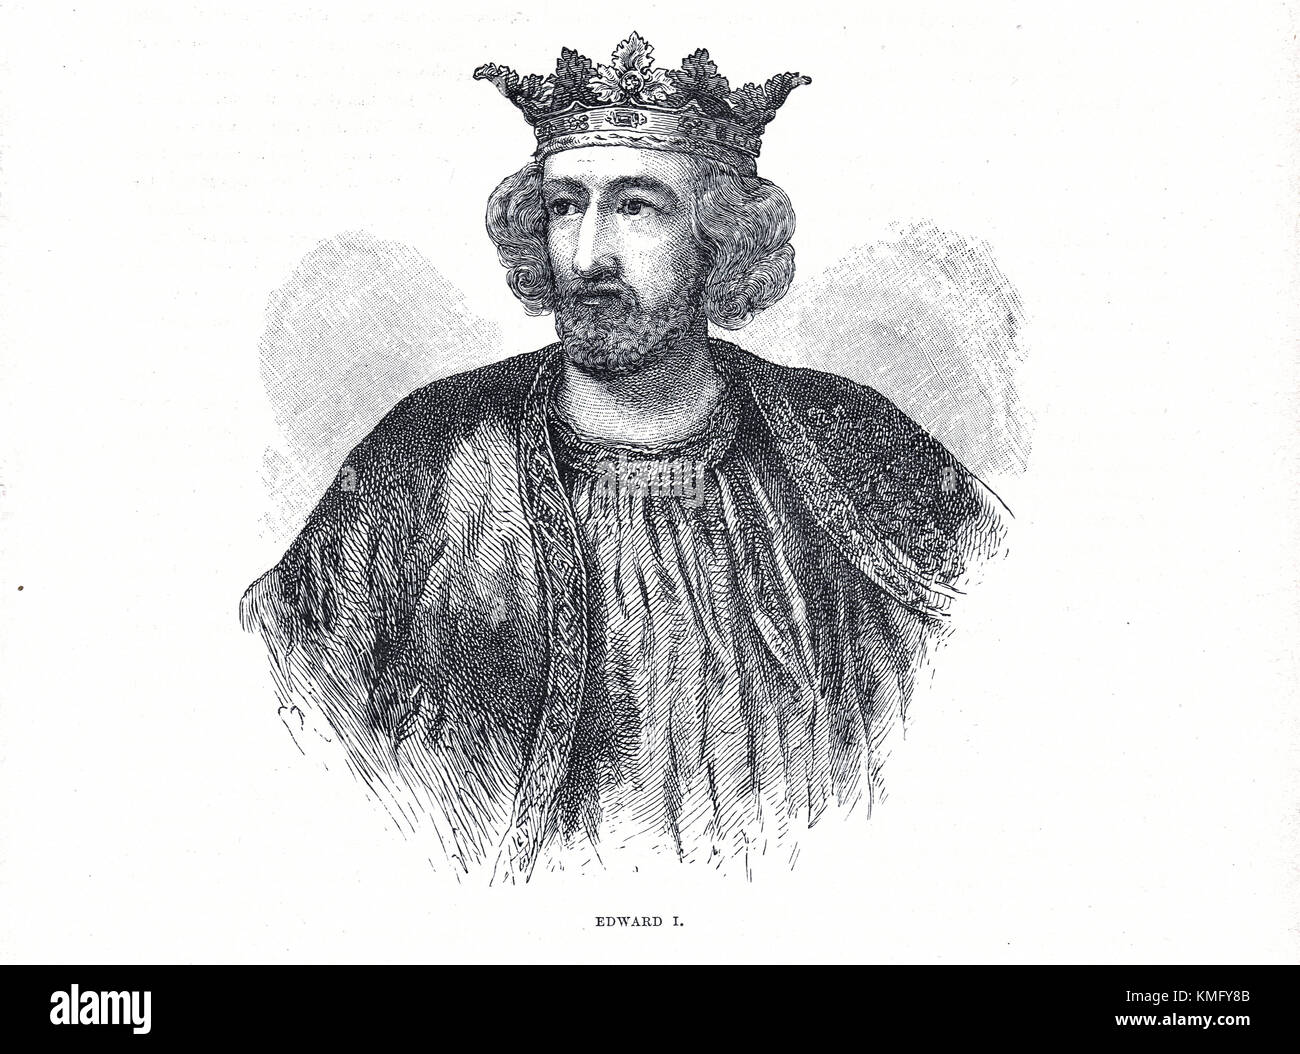 King Edward I of England, 1239-1307, reigned 1272-1307 - Stock Image